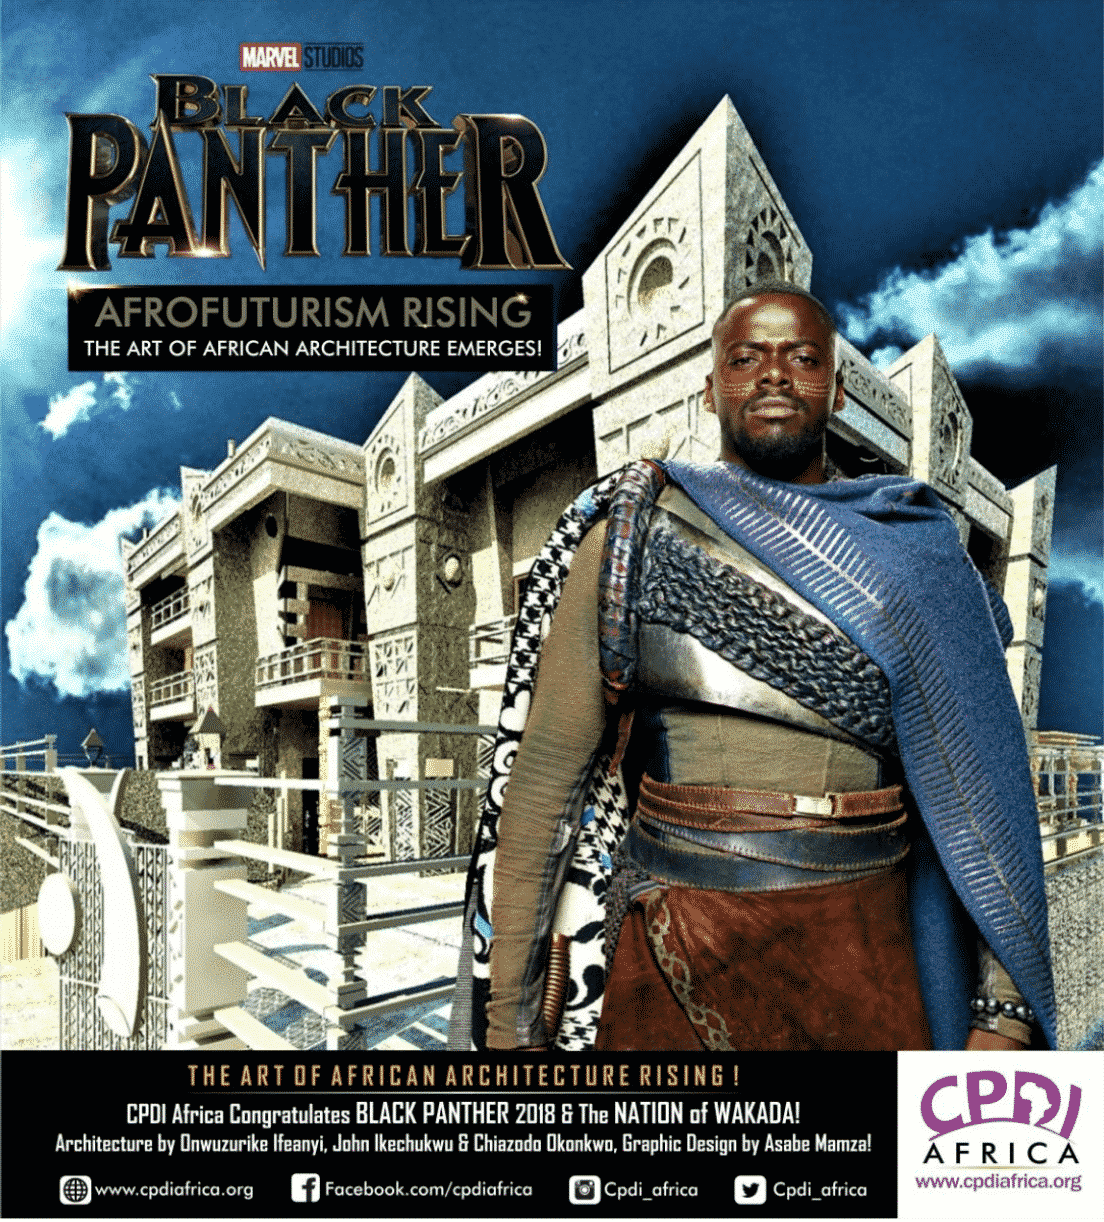 Black Panther movie inspires national dialogue about African